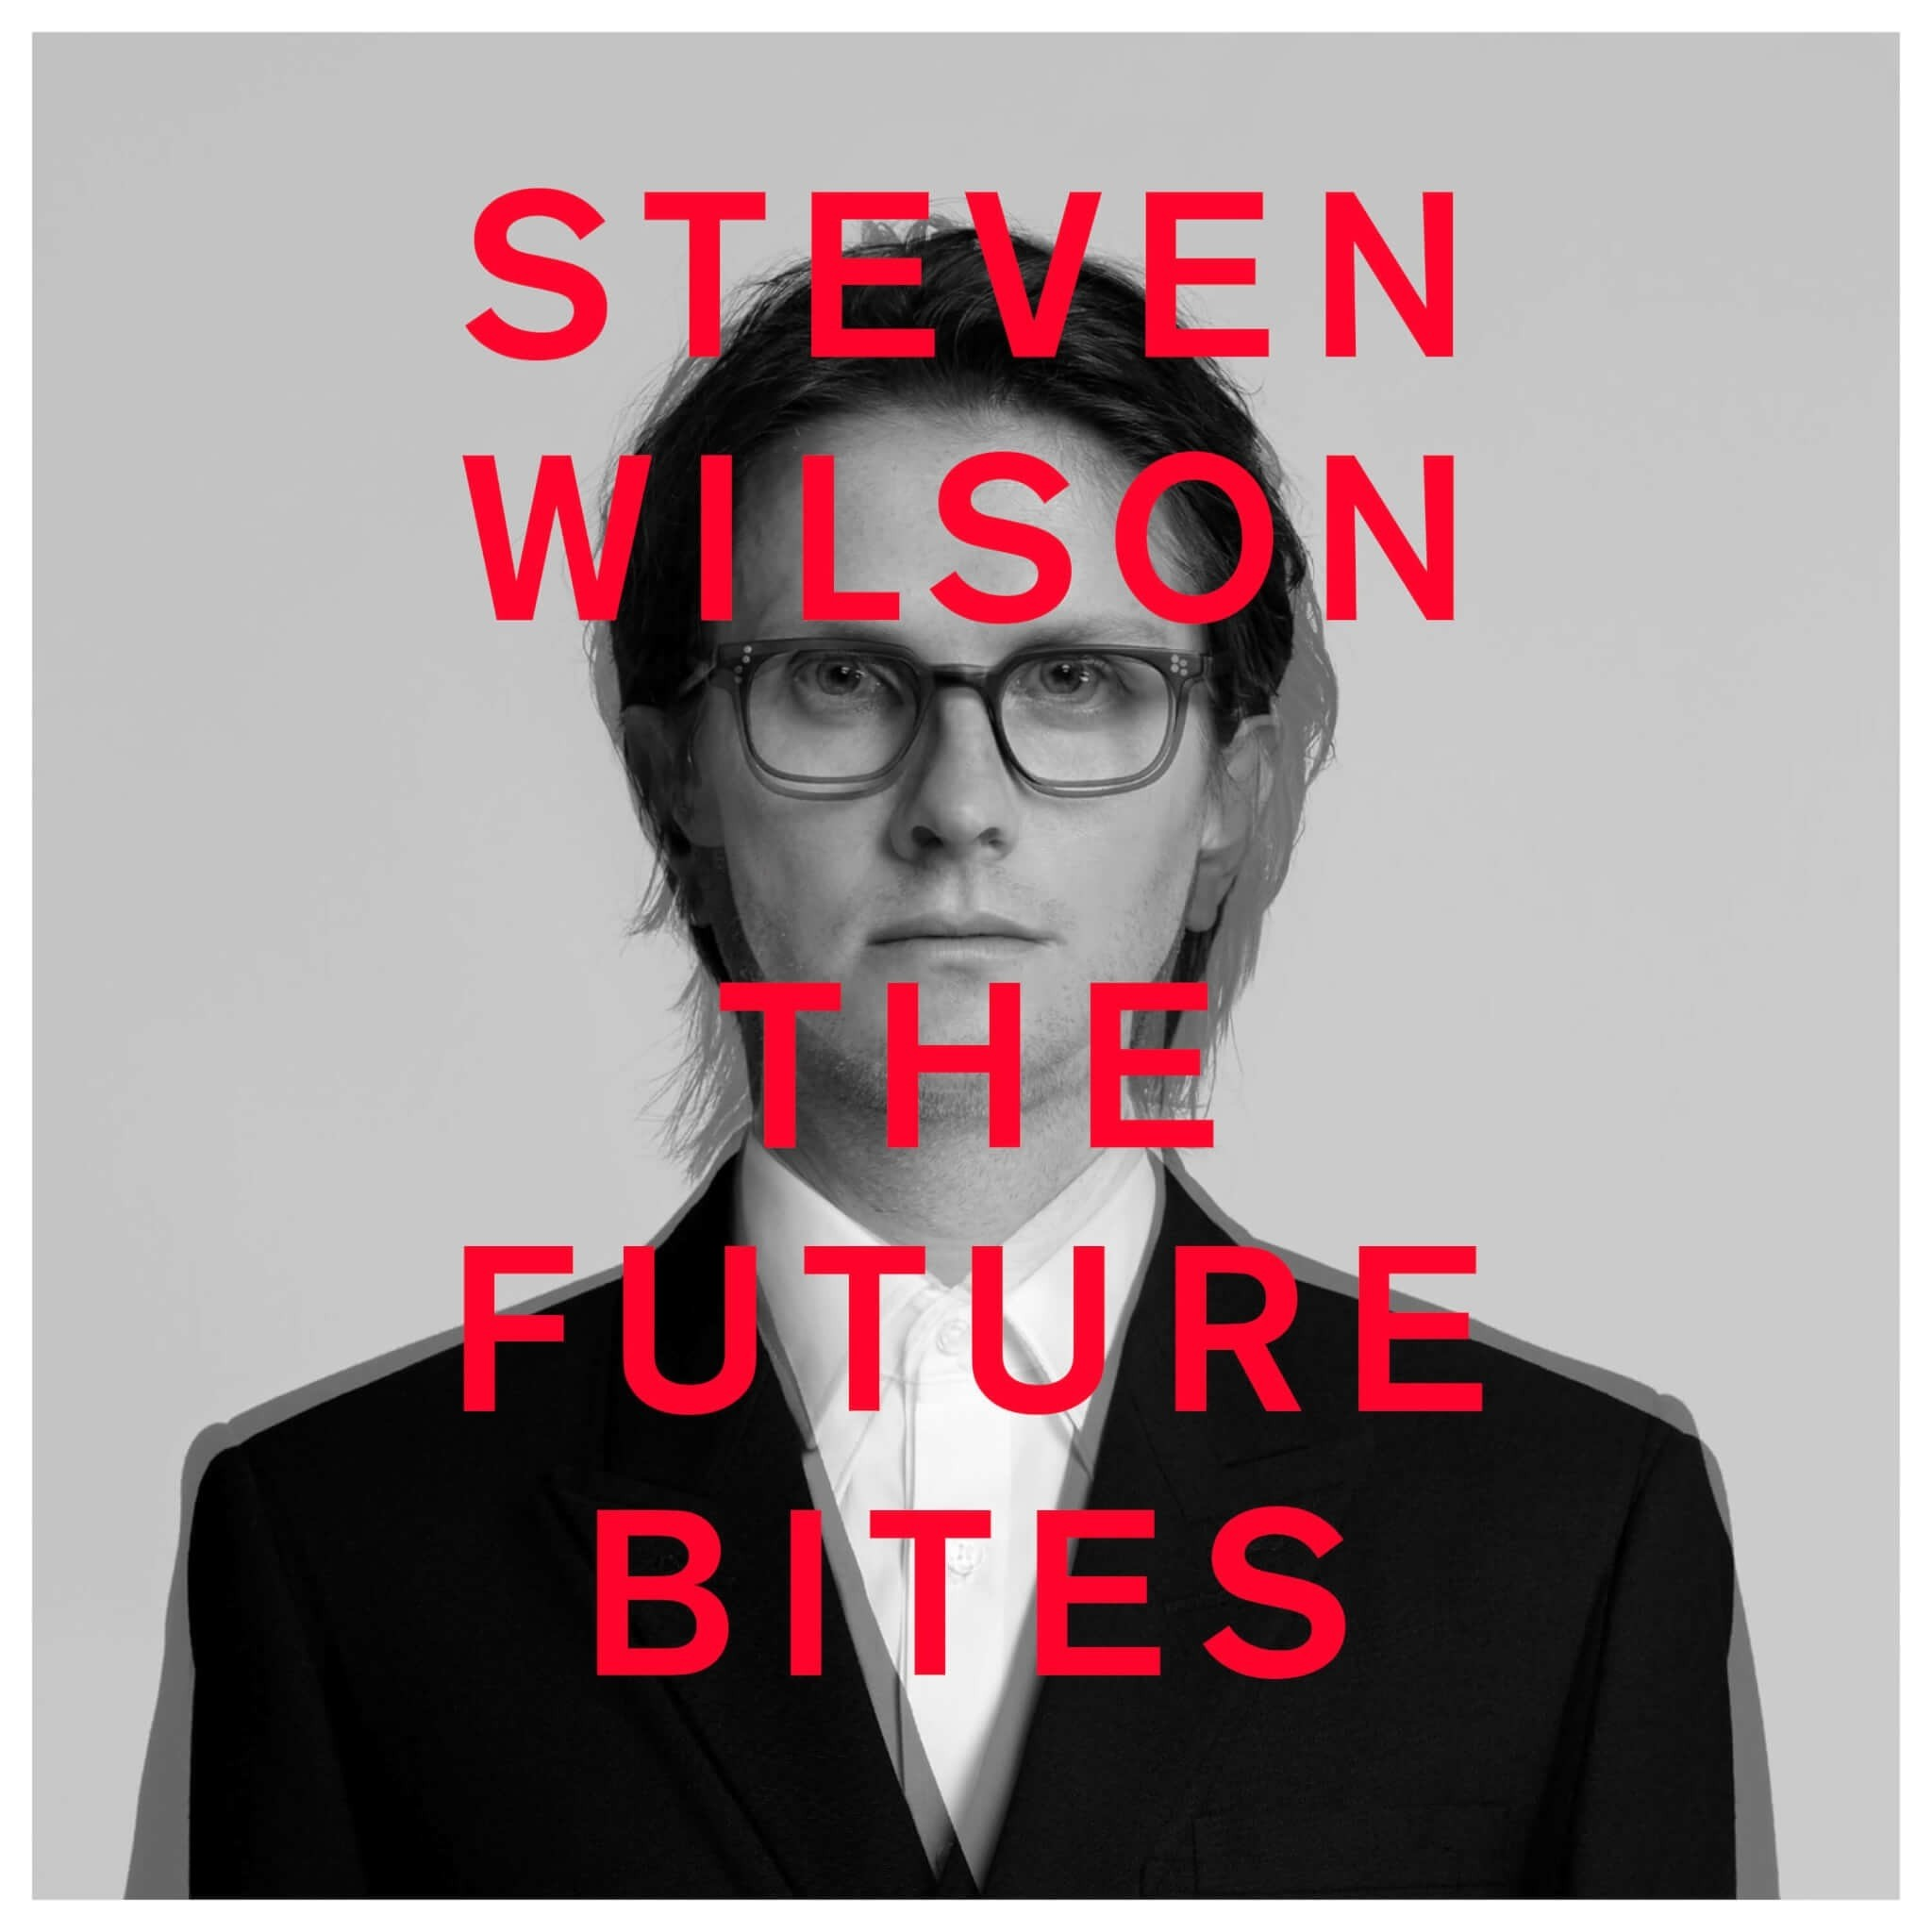 Steven Wilson - The Future Bites - Ltd White